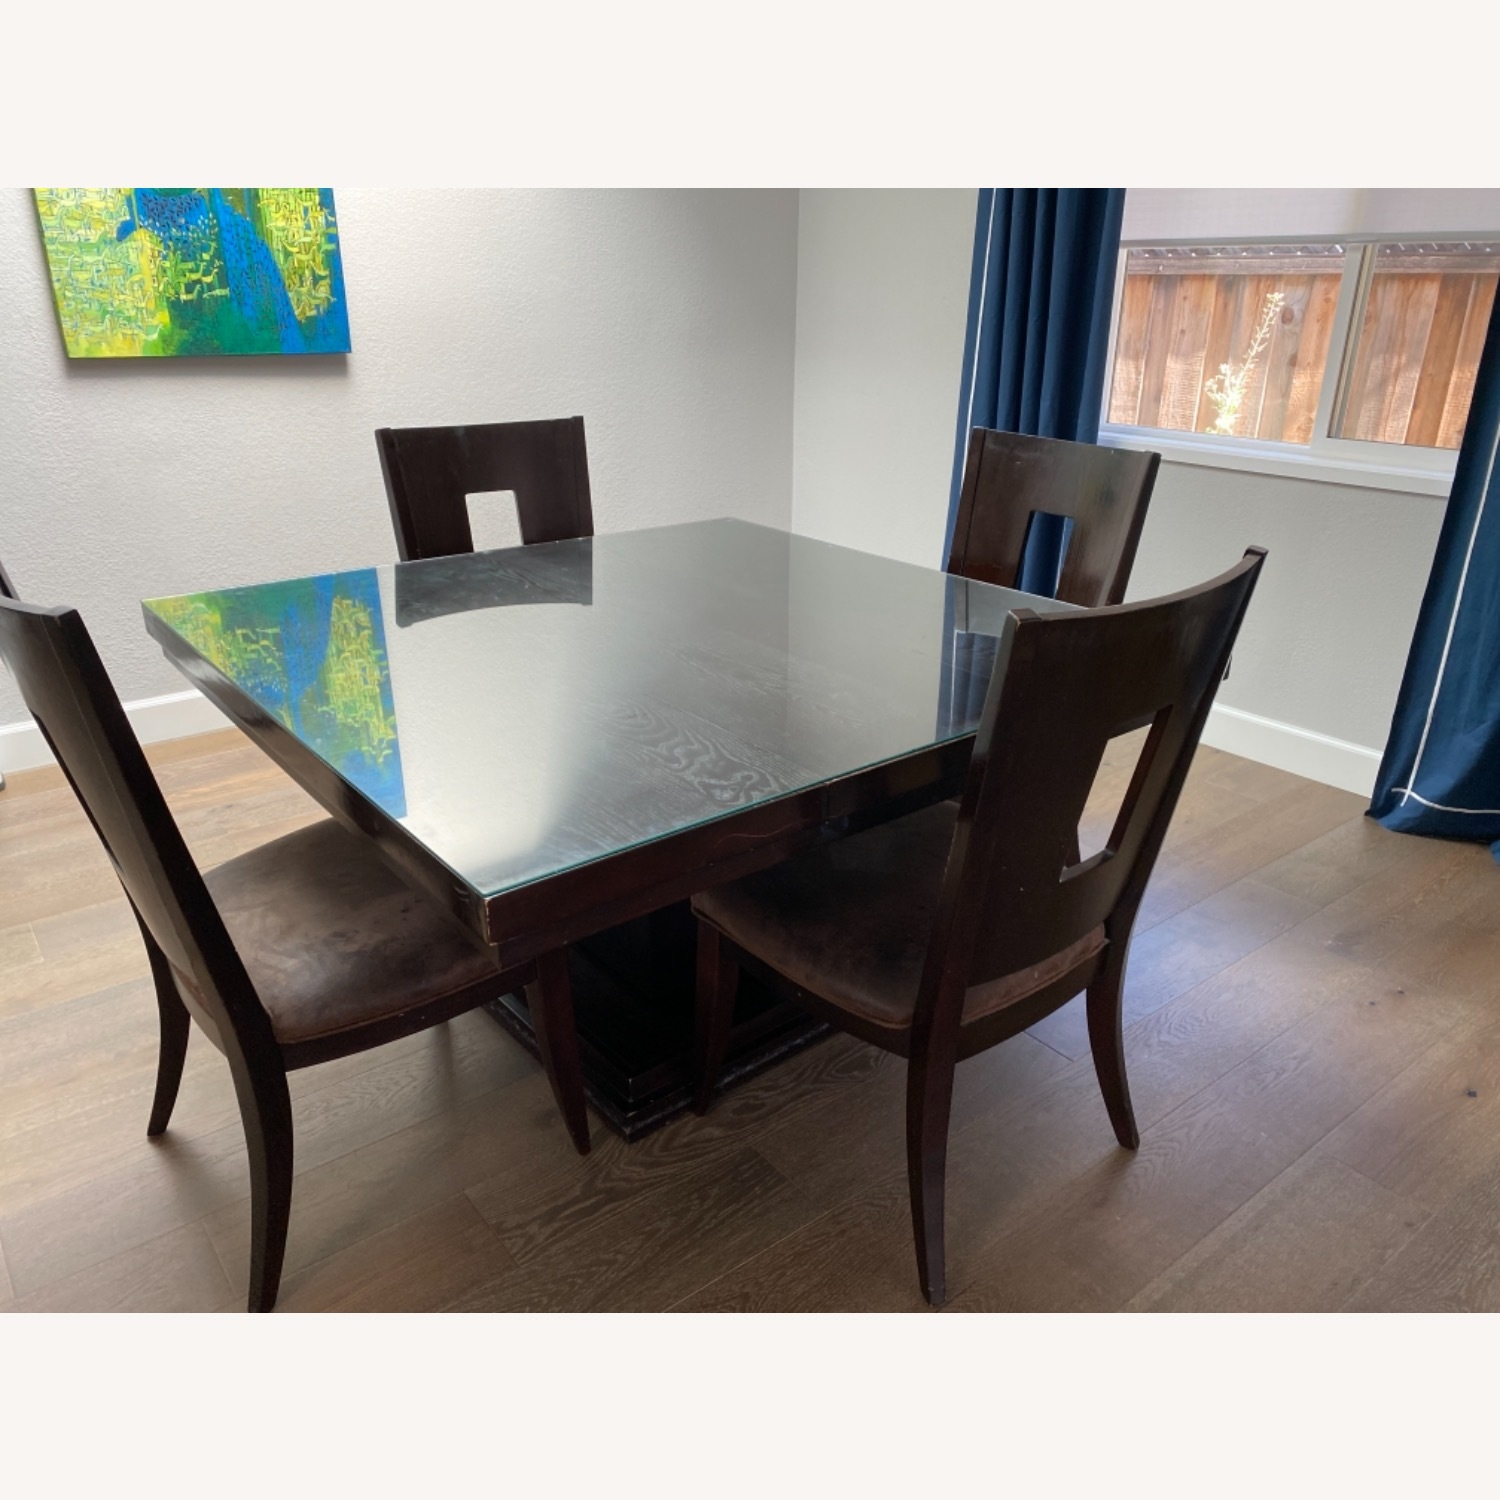 Square Pedestal Wooden Dining Table with 4 Chairs - image-1